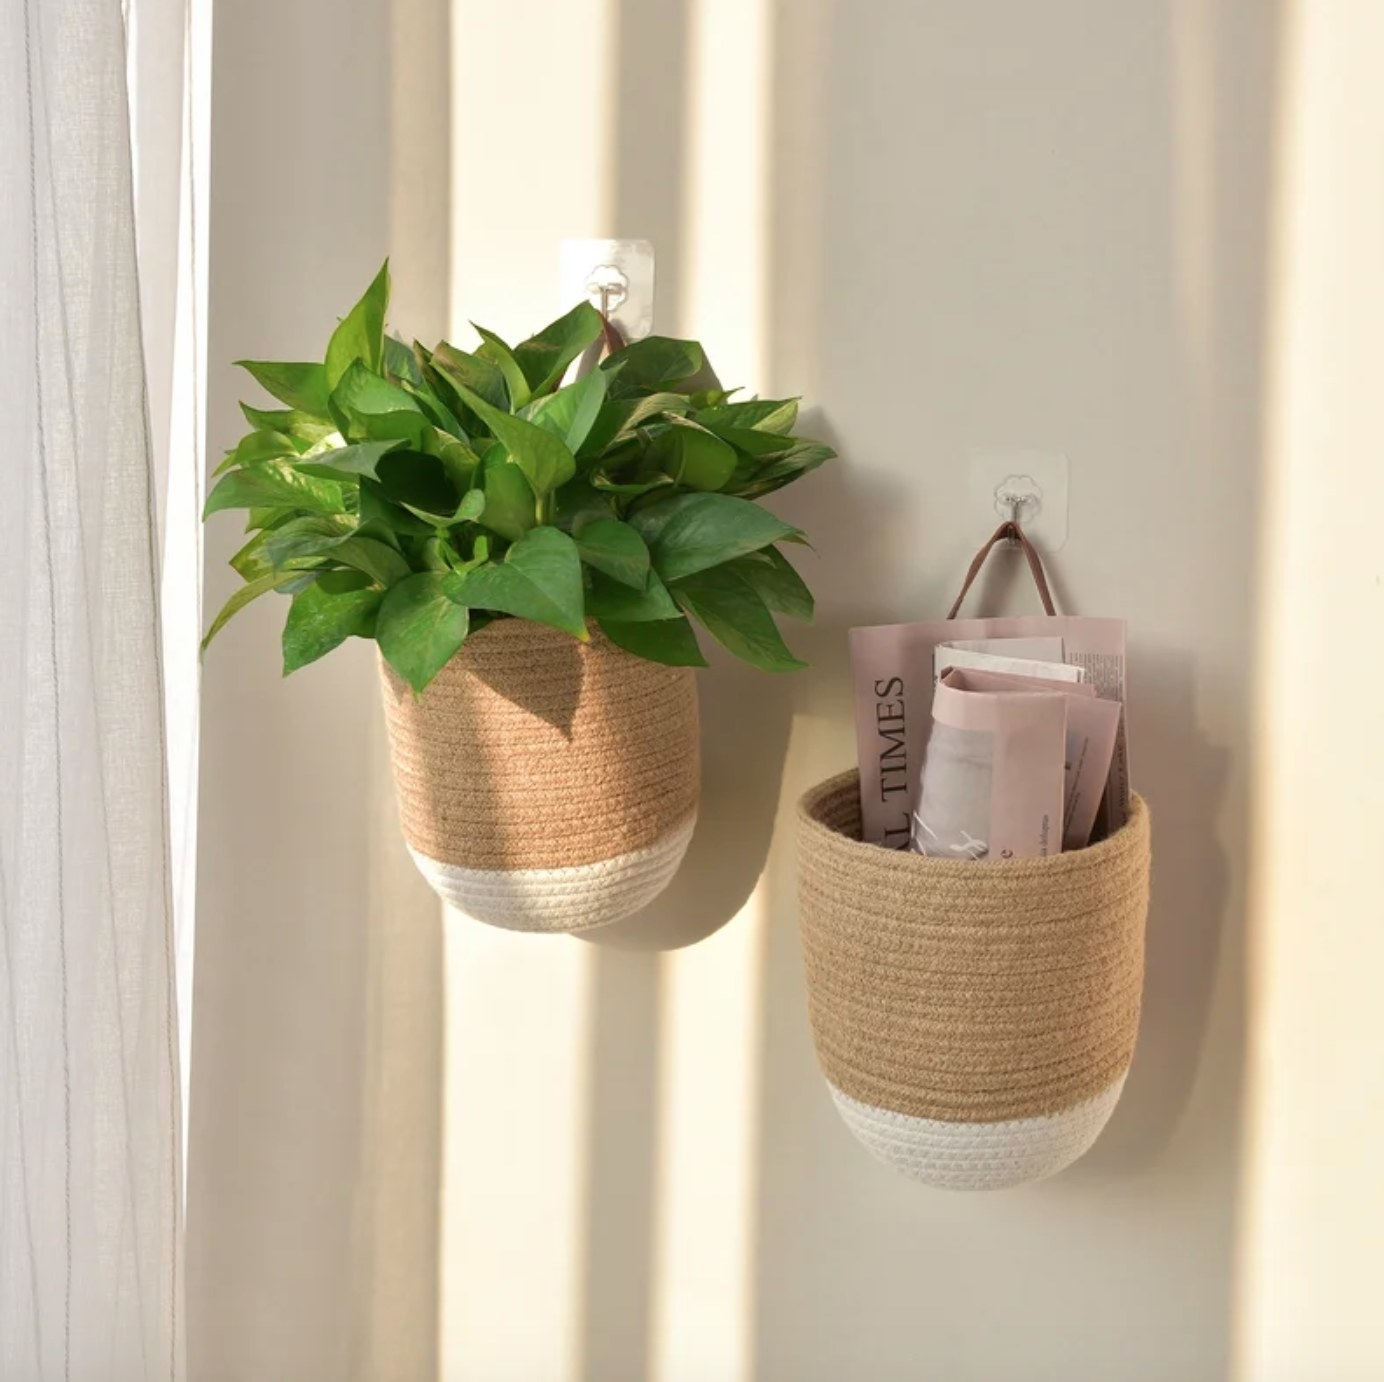 The hanging baskets in jute/ white